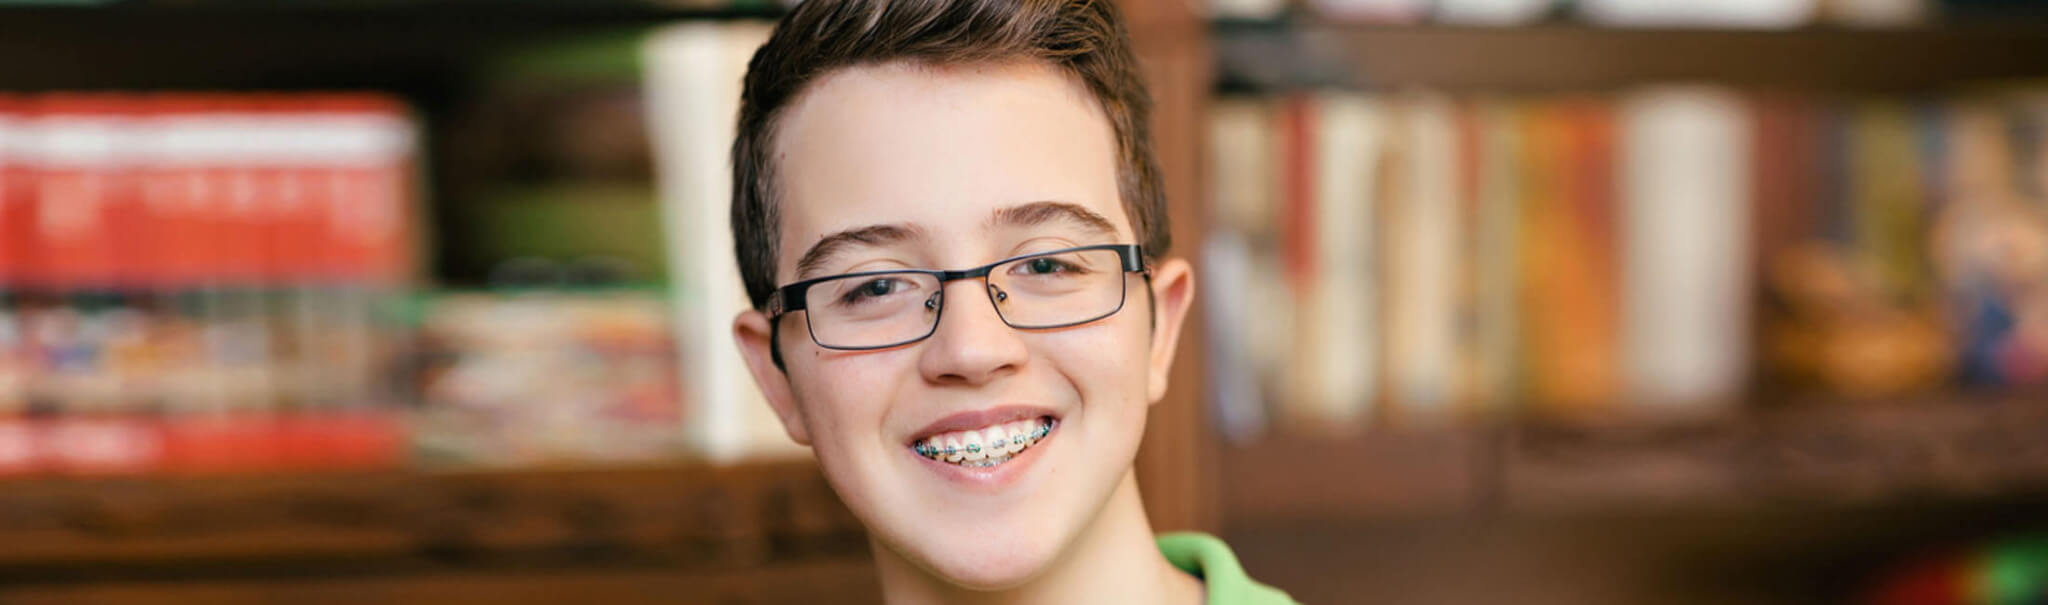 Orthodontic FAQ's - McDonald Orthodontics